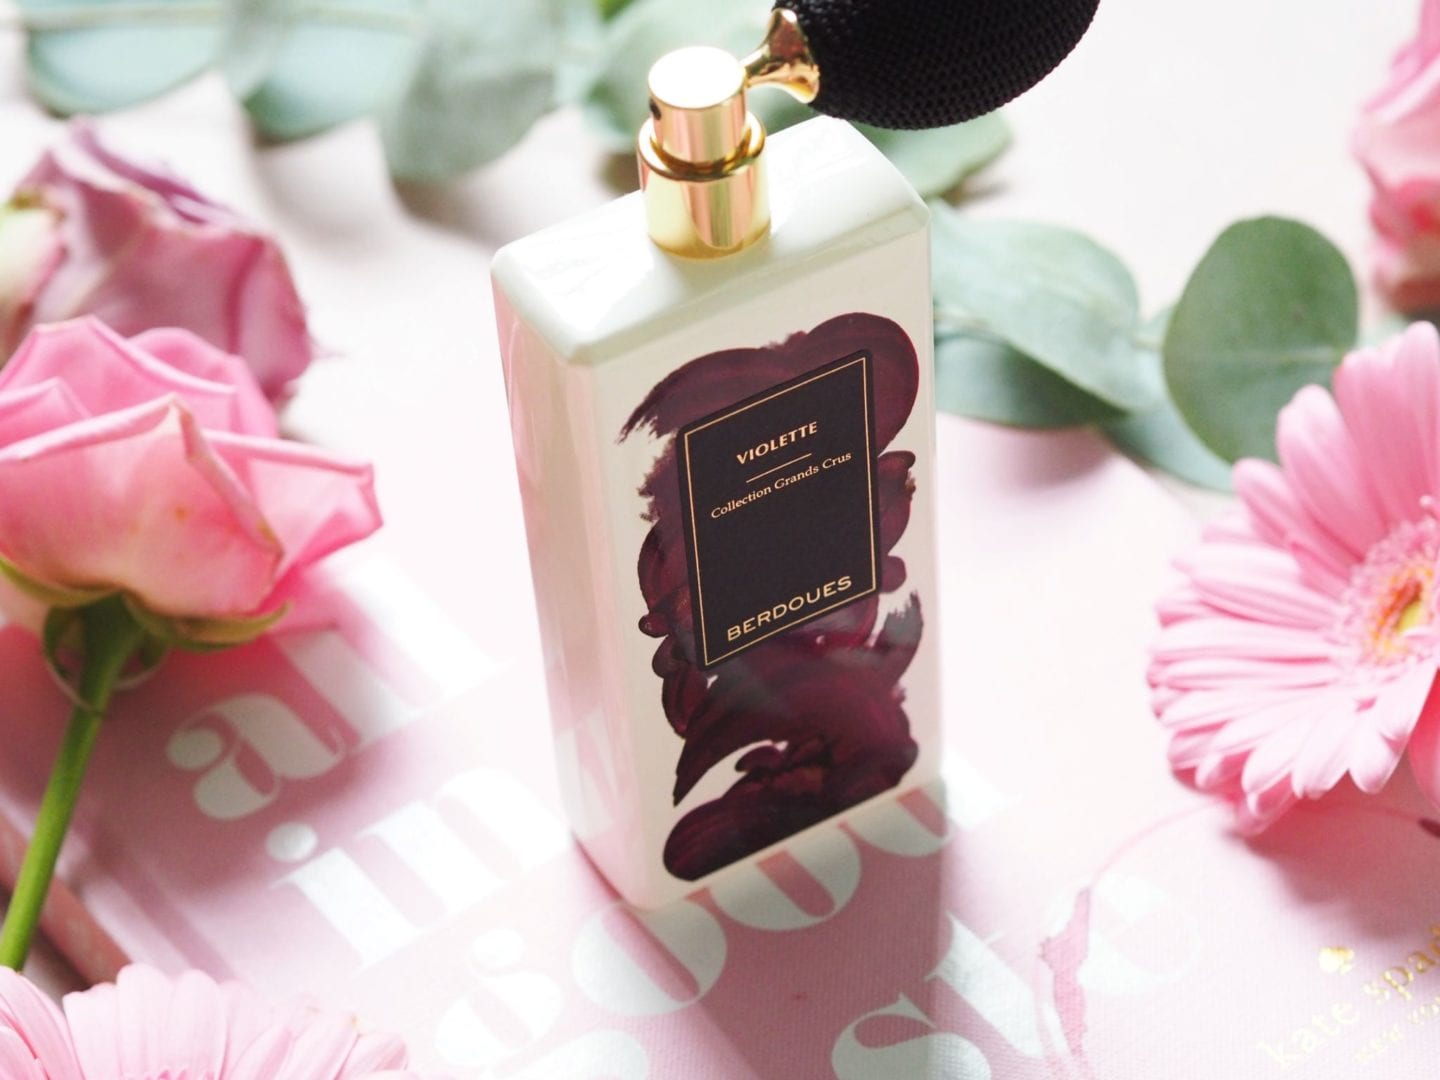 Berdoues-Violette-perfume-fragrance review